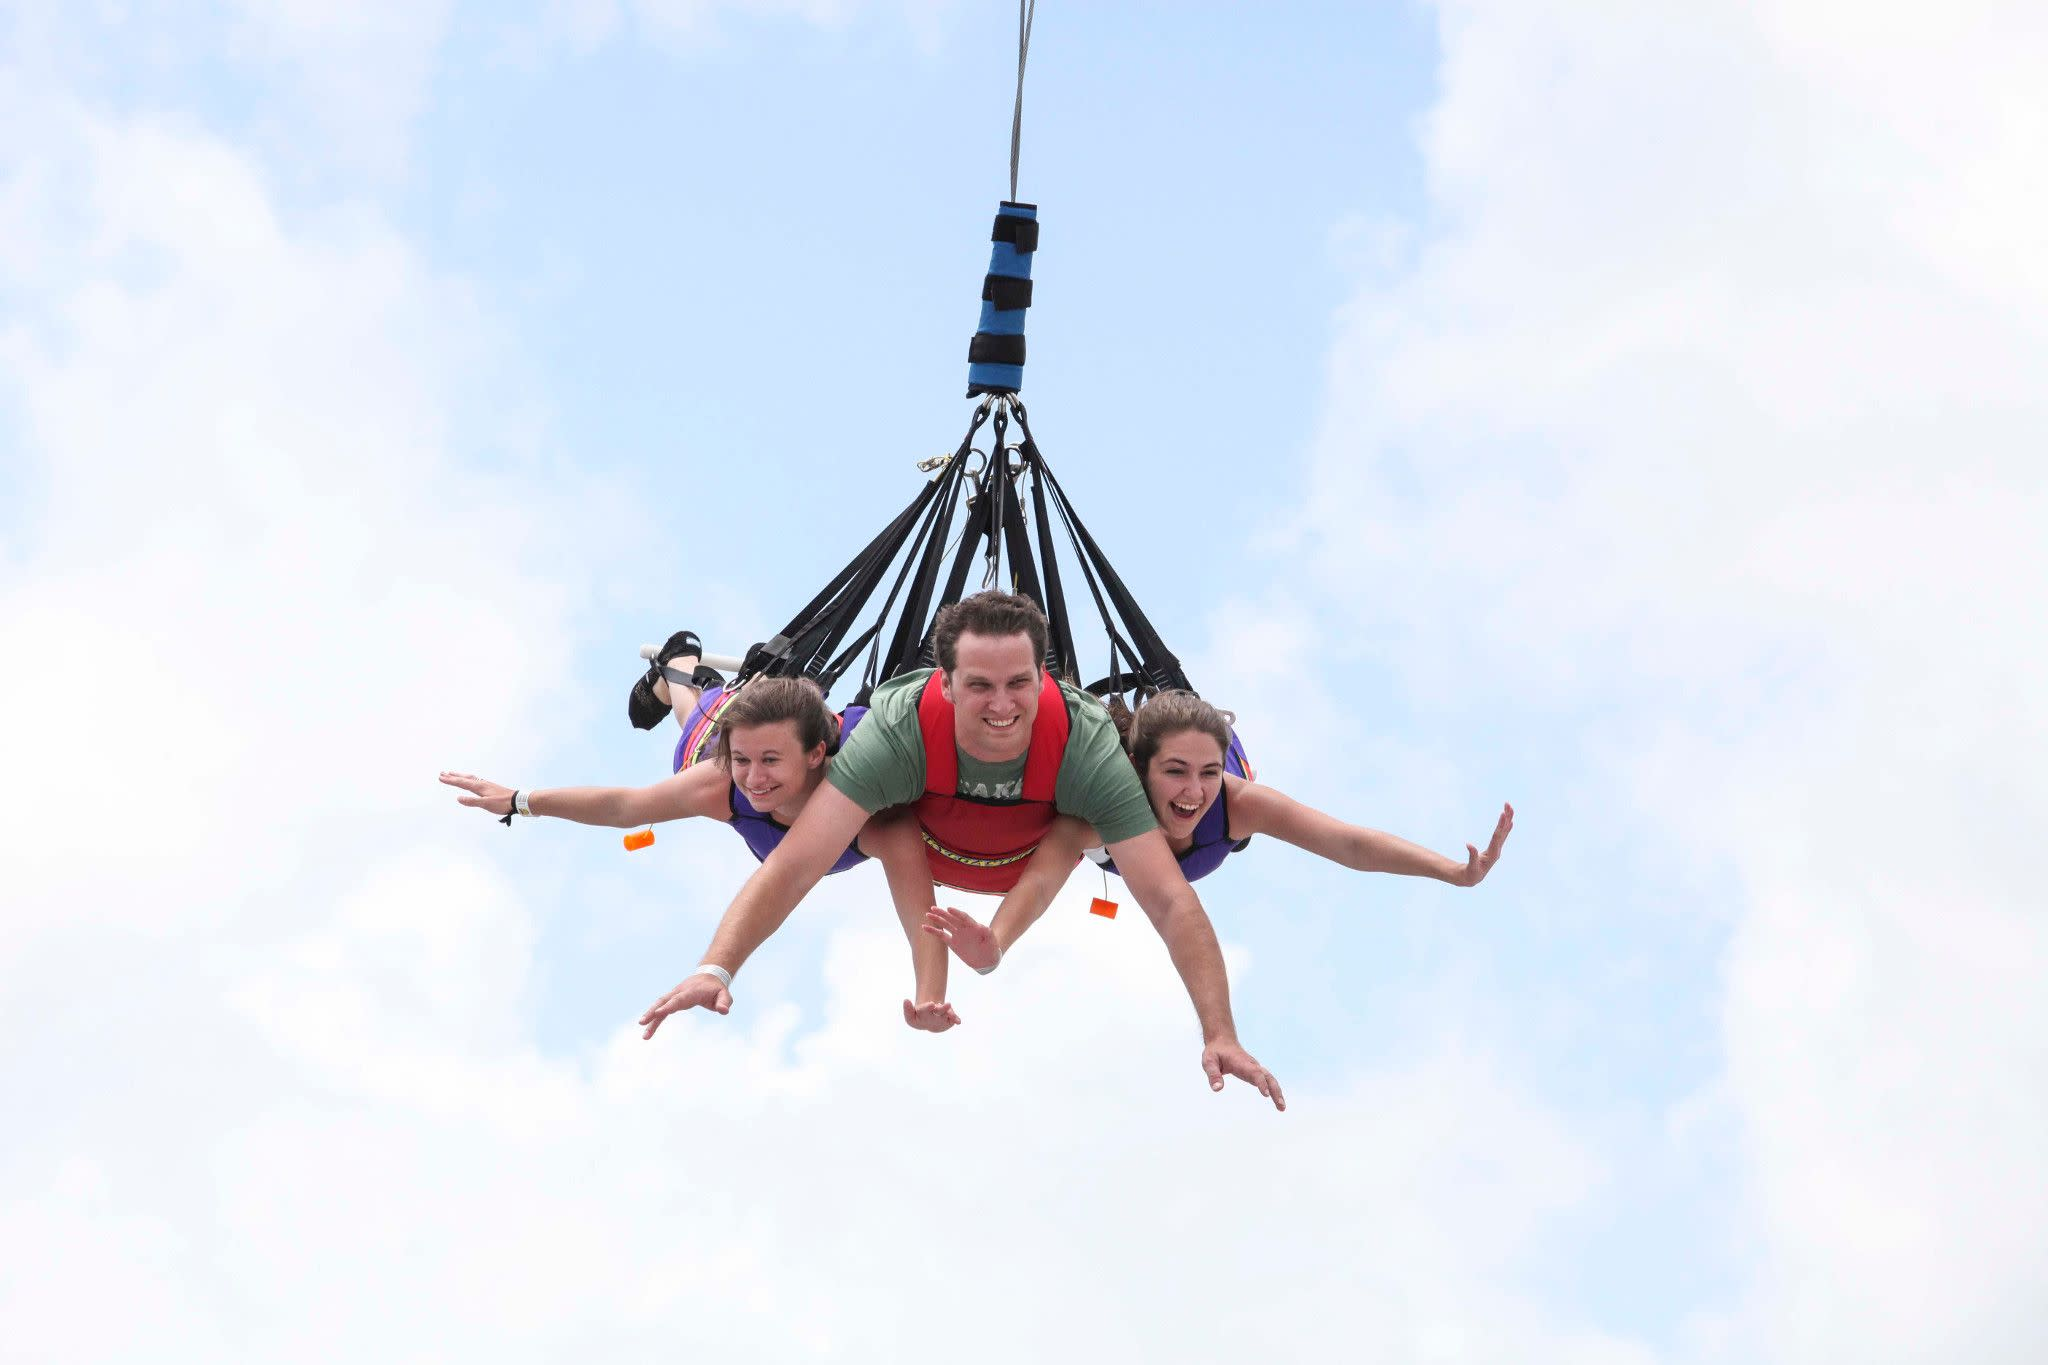 SkyCoaster at Fun Spot America in Orlando